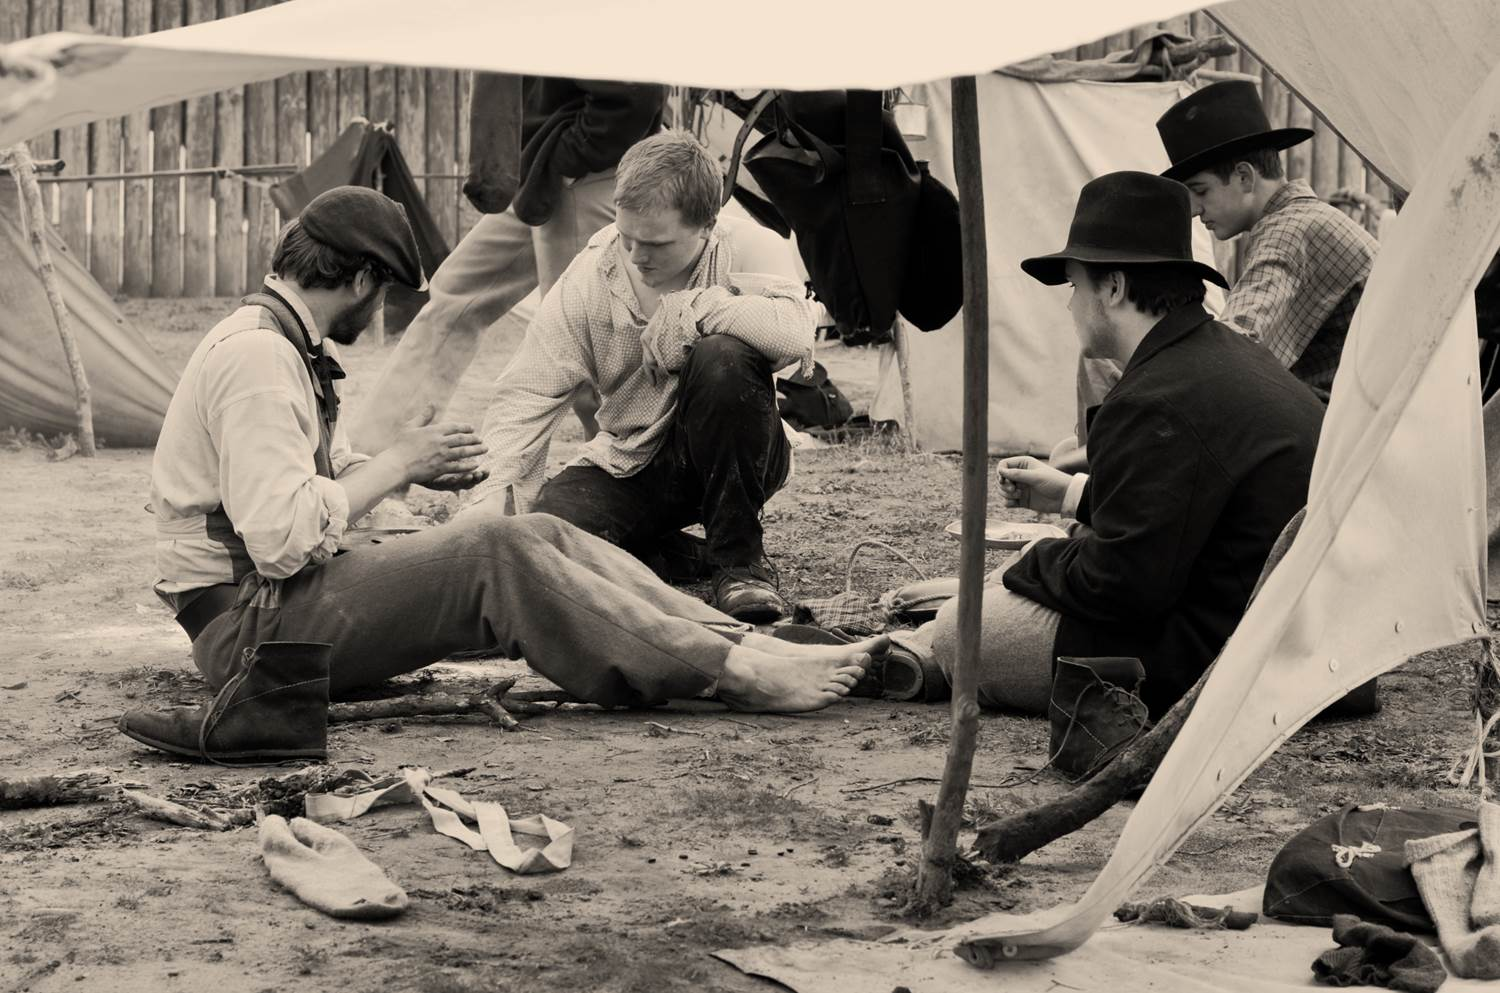 Four men in ragged Civil War era clothes sit on the ground under a makeshift shelter.